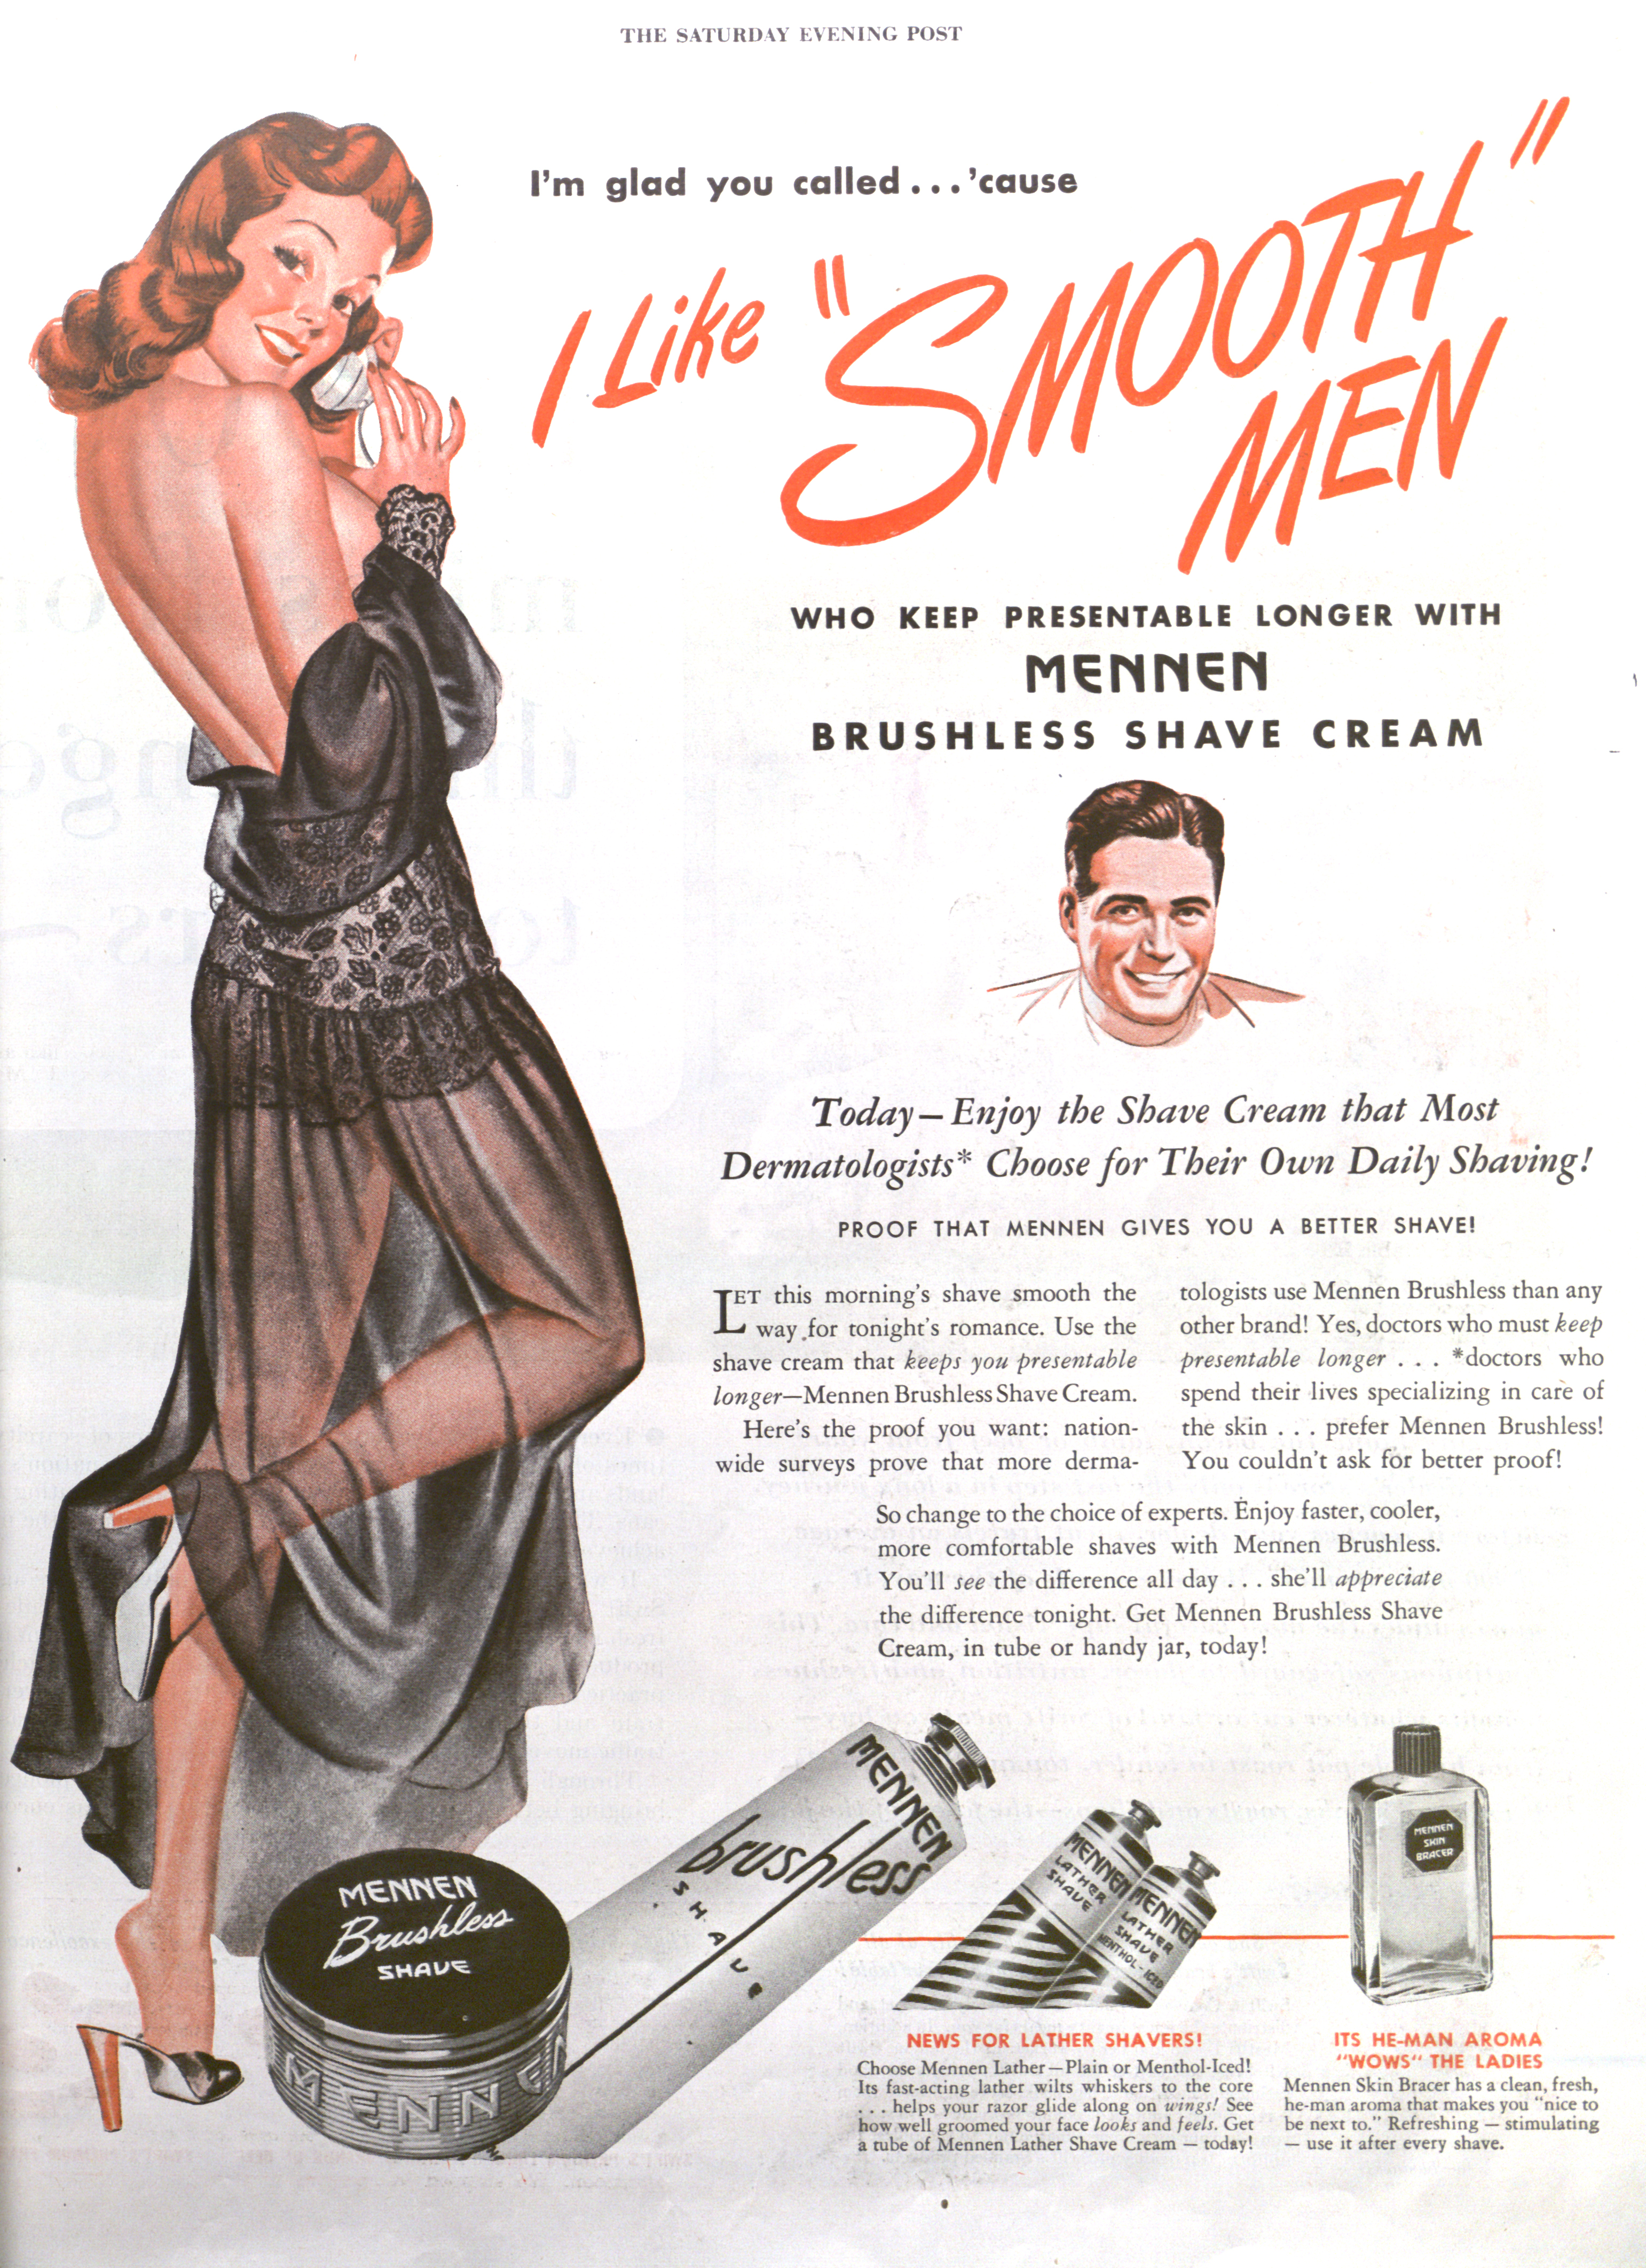 Mennen Brushless Shave Cream - published in The Saturday Evening Post - October 5, 1946